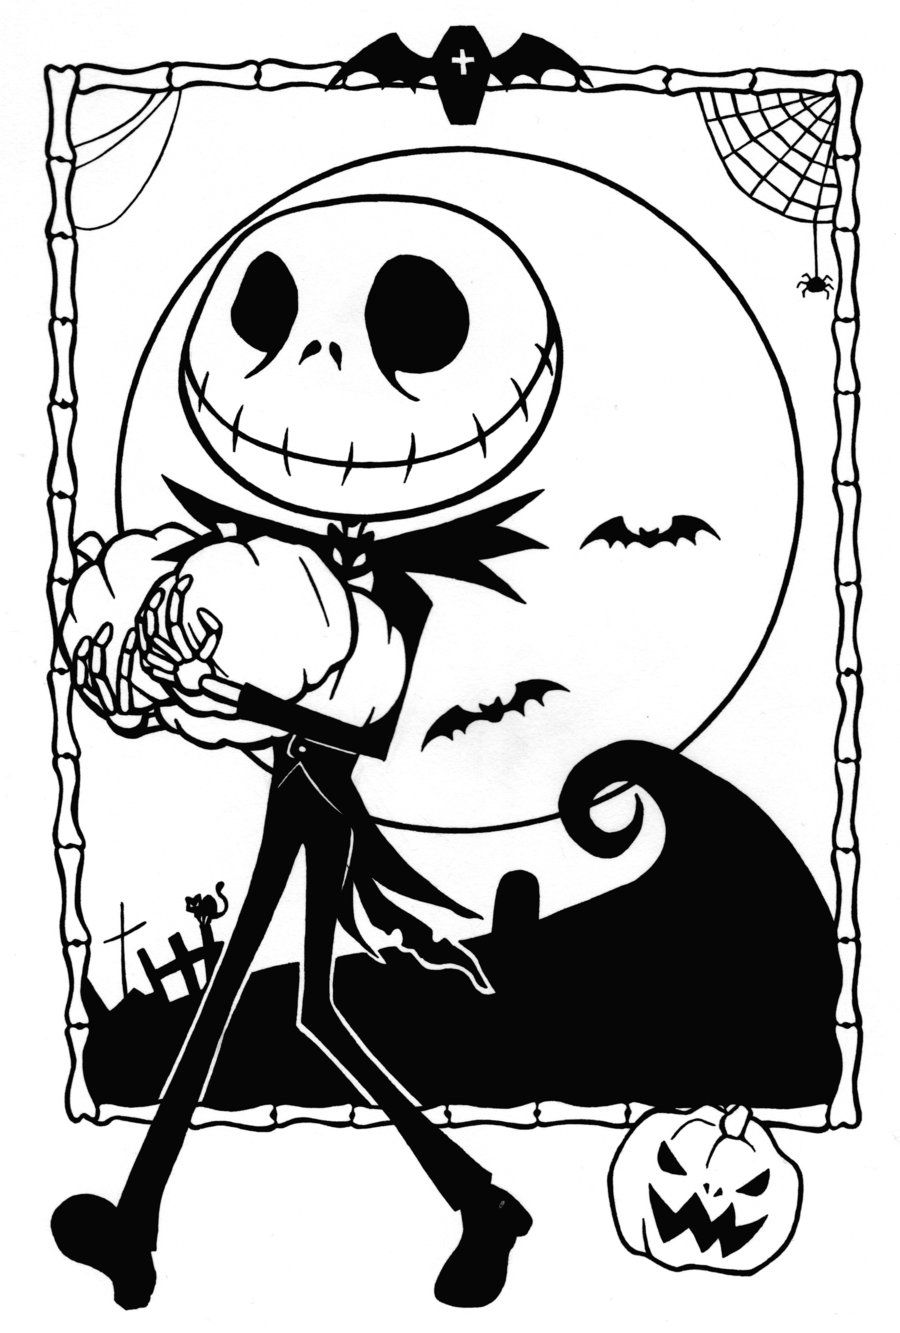 Free Printable Nightmare Before Christmas Coloring Pages | Free ...